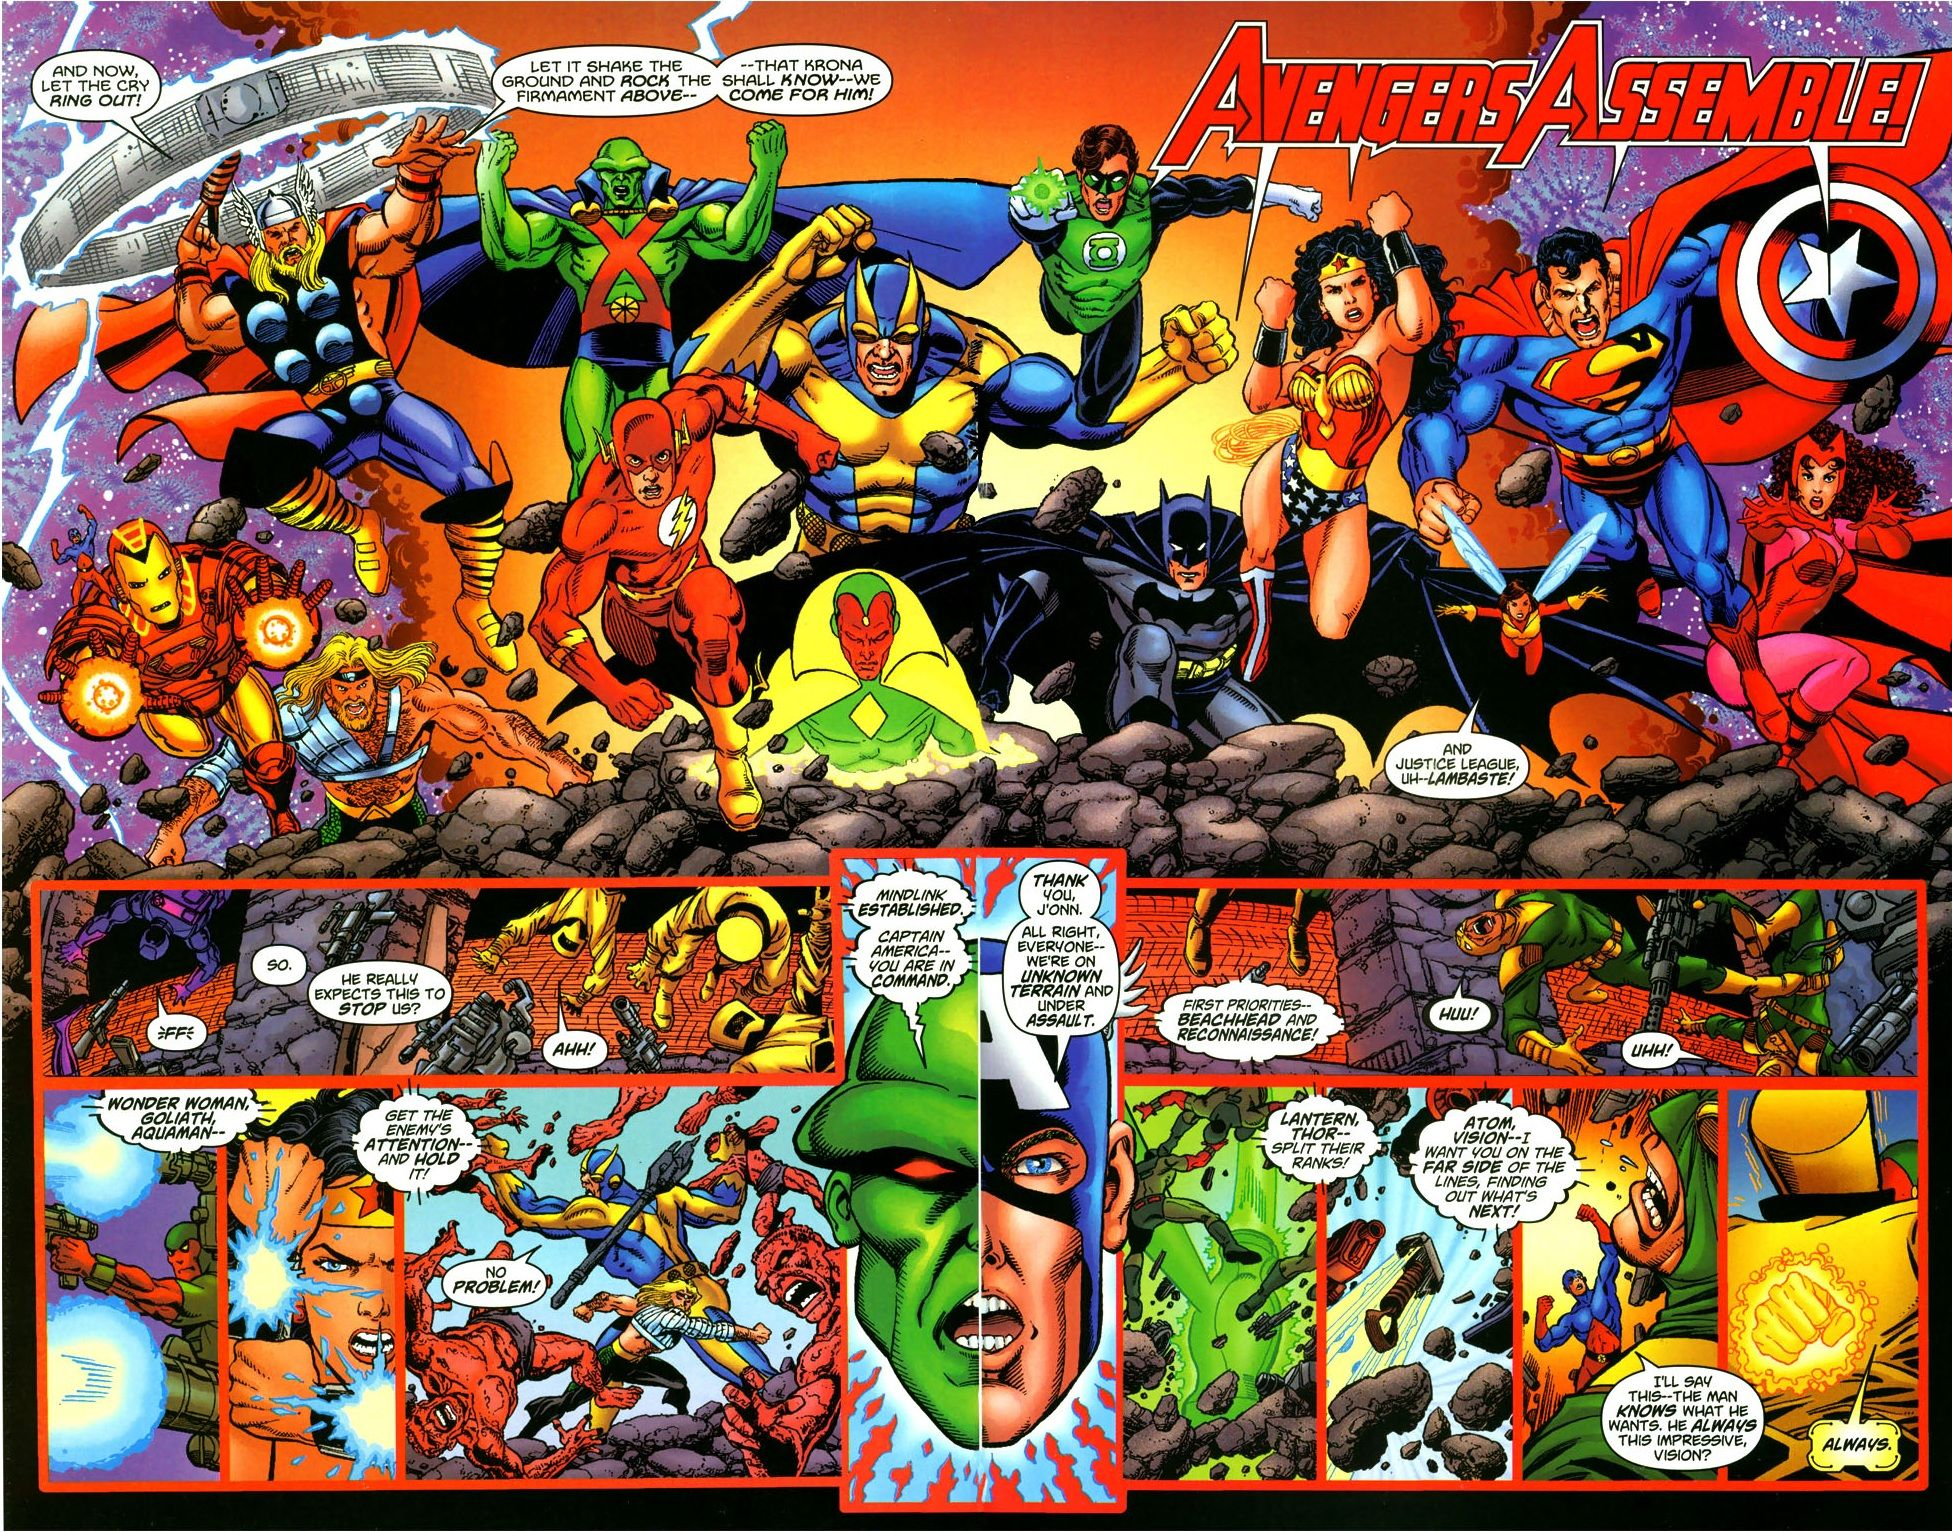 A Final Battle Begins Complete With Mindlink That The Jla Or The X Men Like To Use And The Forces Captain America Comic Captain America Comic Books Comics